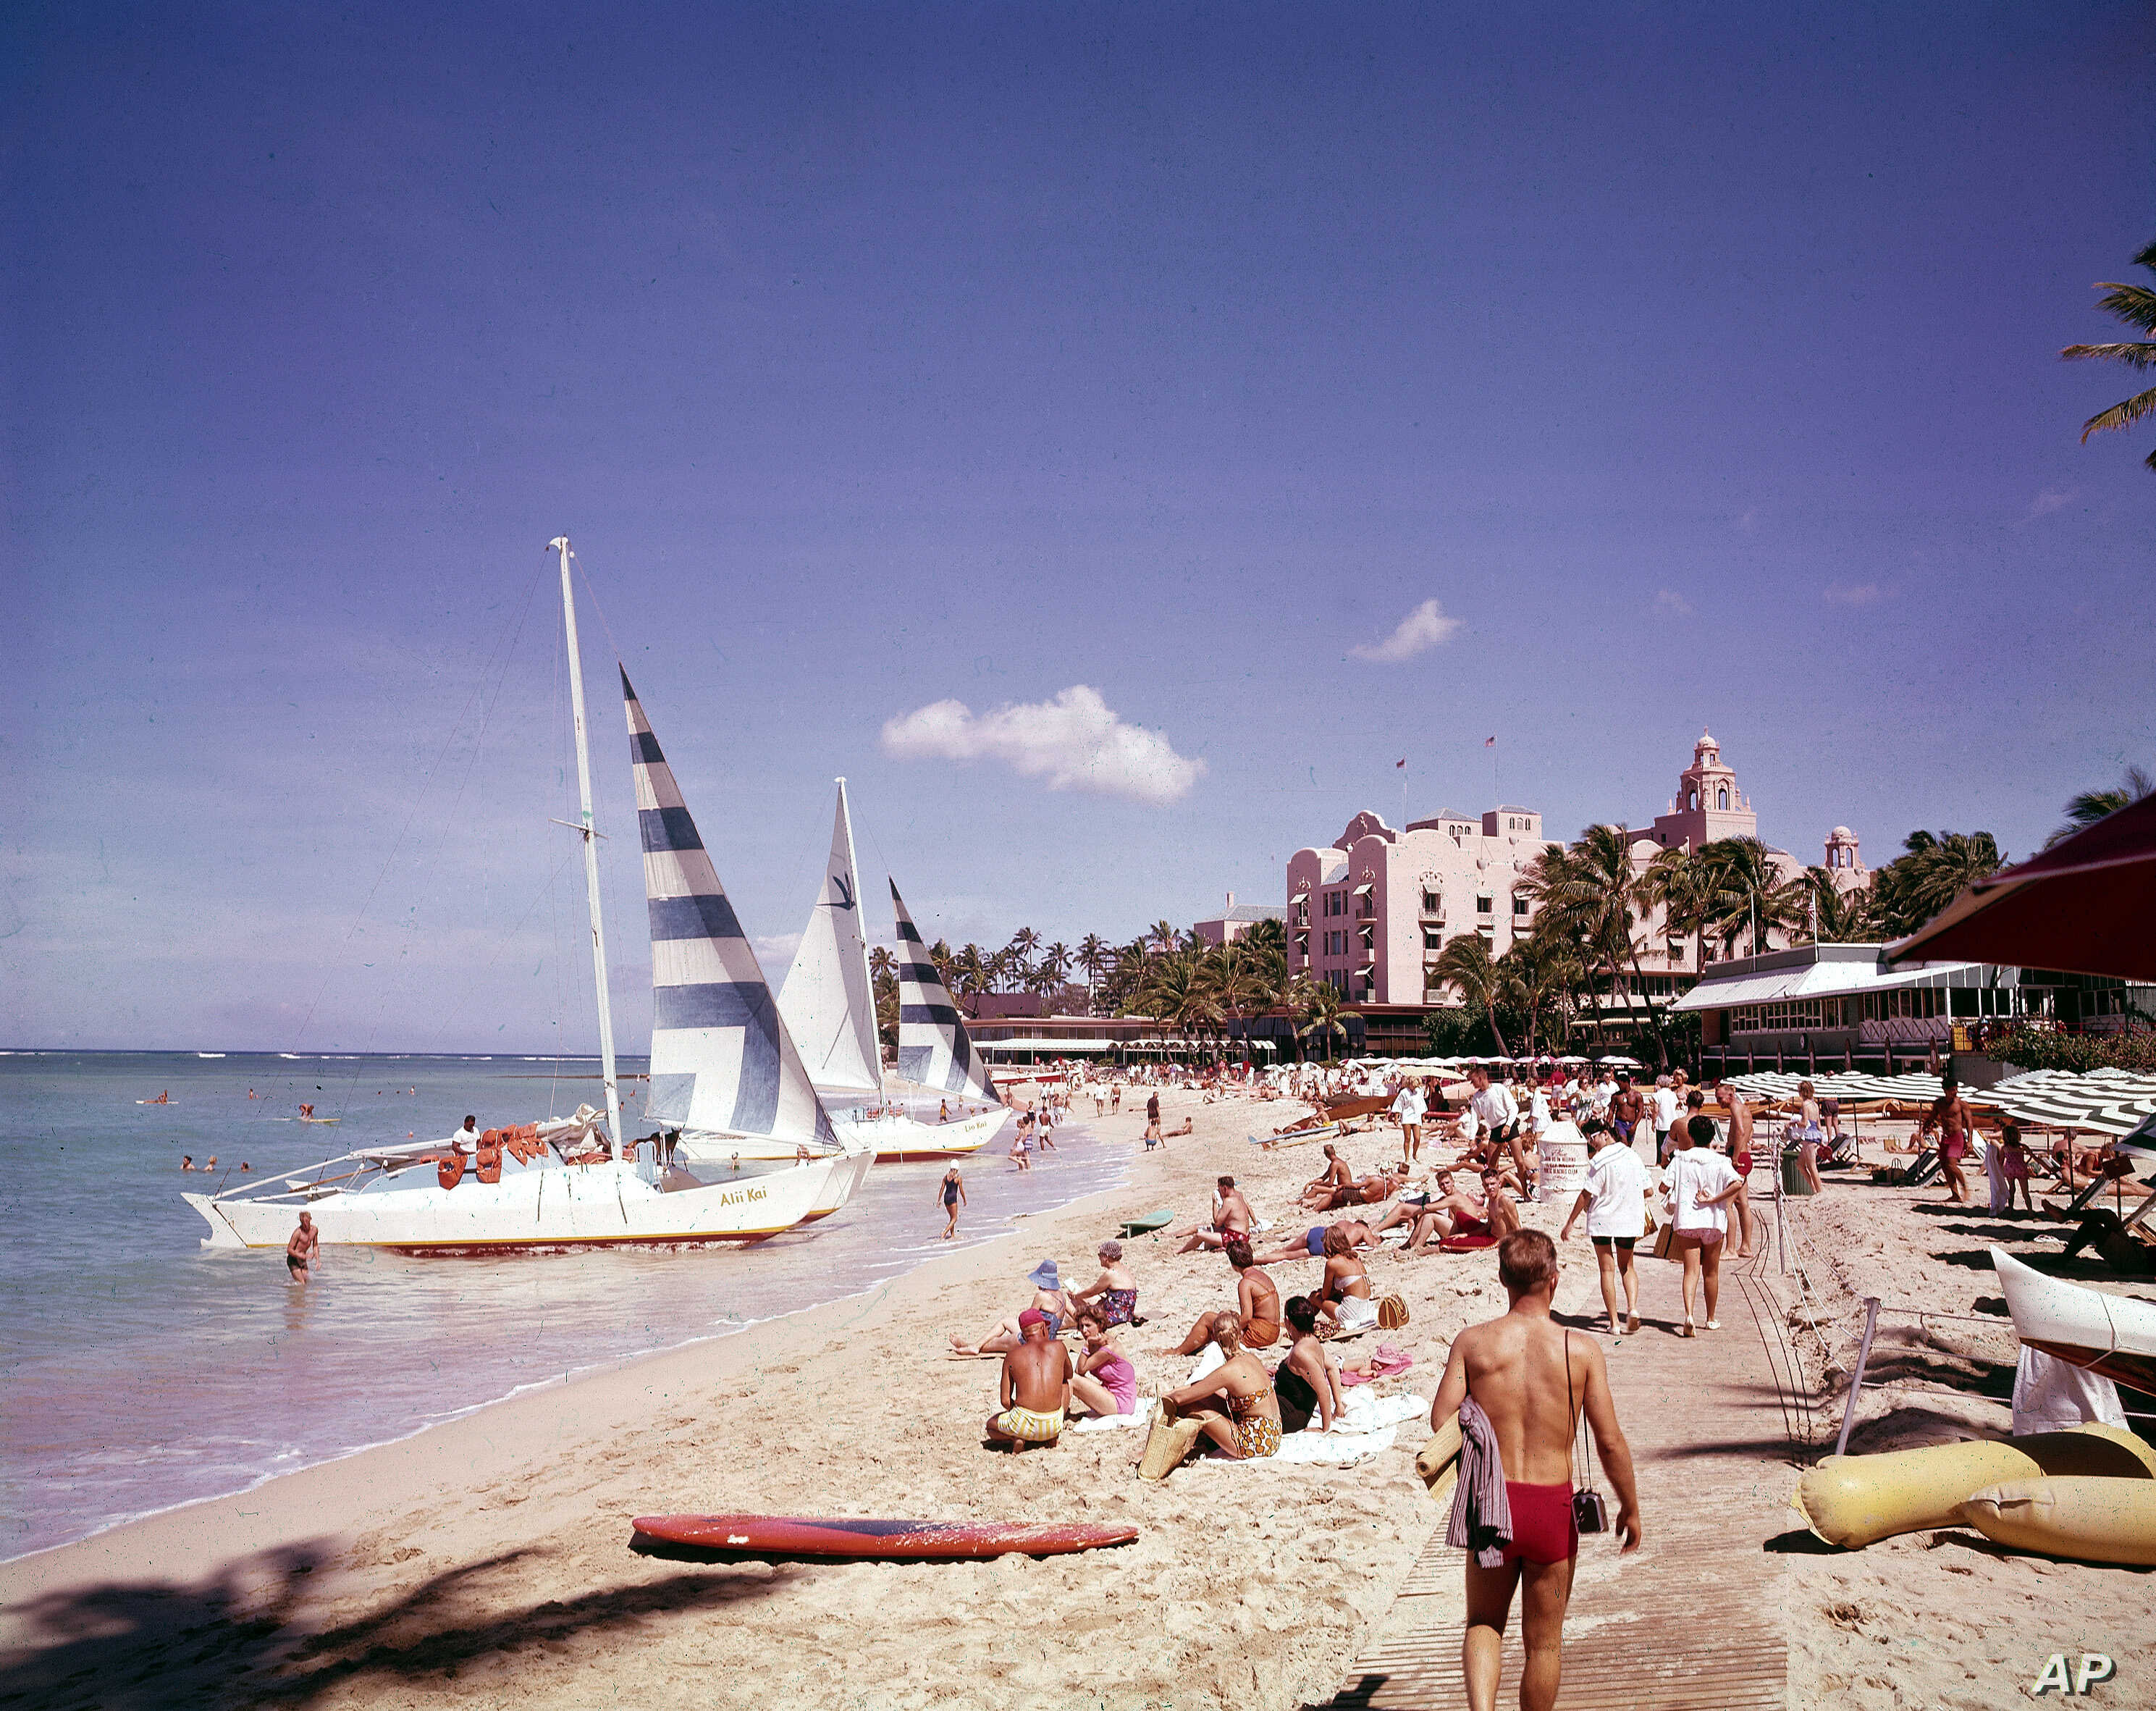 Waikiki beach, Hawaii, in July 1961. Post WWII settlement and tourism led to a boom in housing developments and hotels, leading to more land struggles with Native Hawaiians.